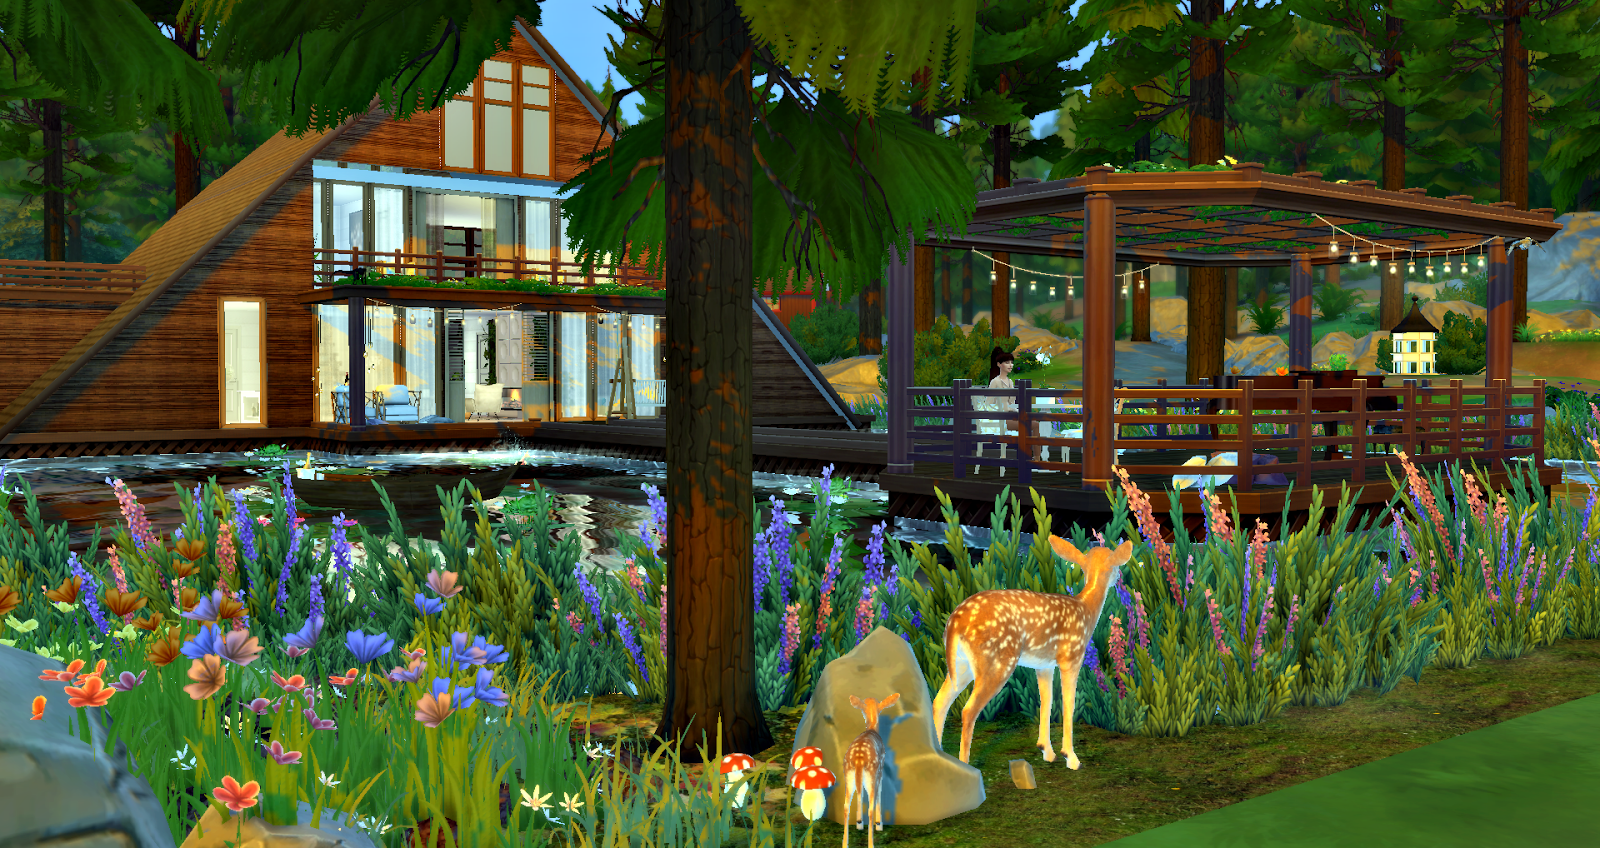 sims 4 cc's - the best: lake house by lily sims, Badezimmer ideen